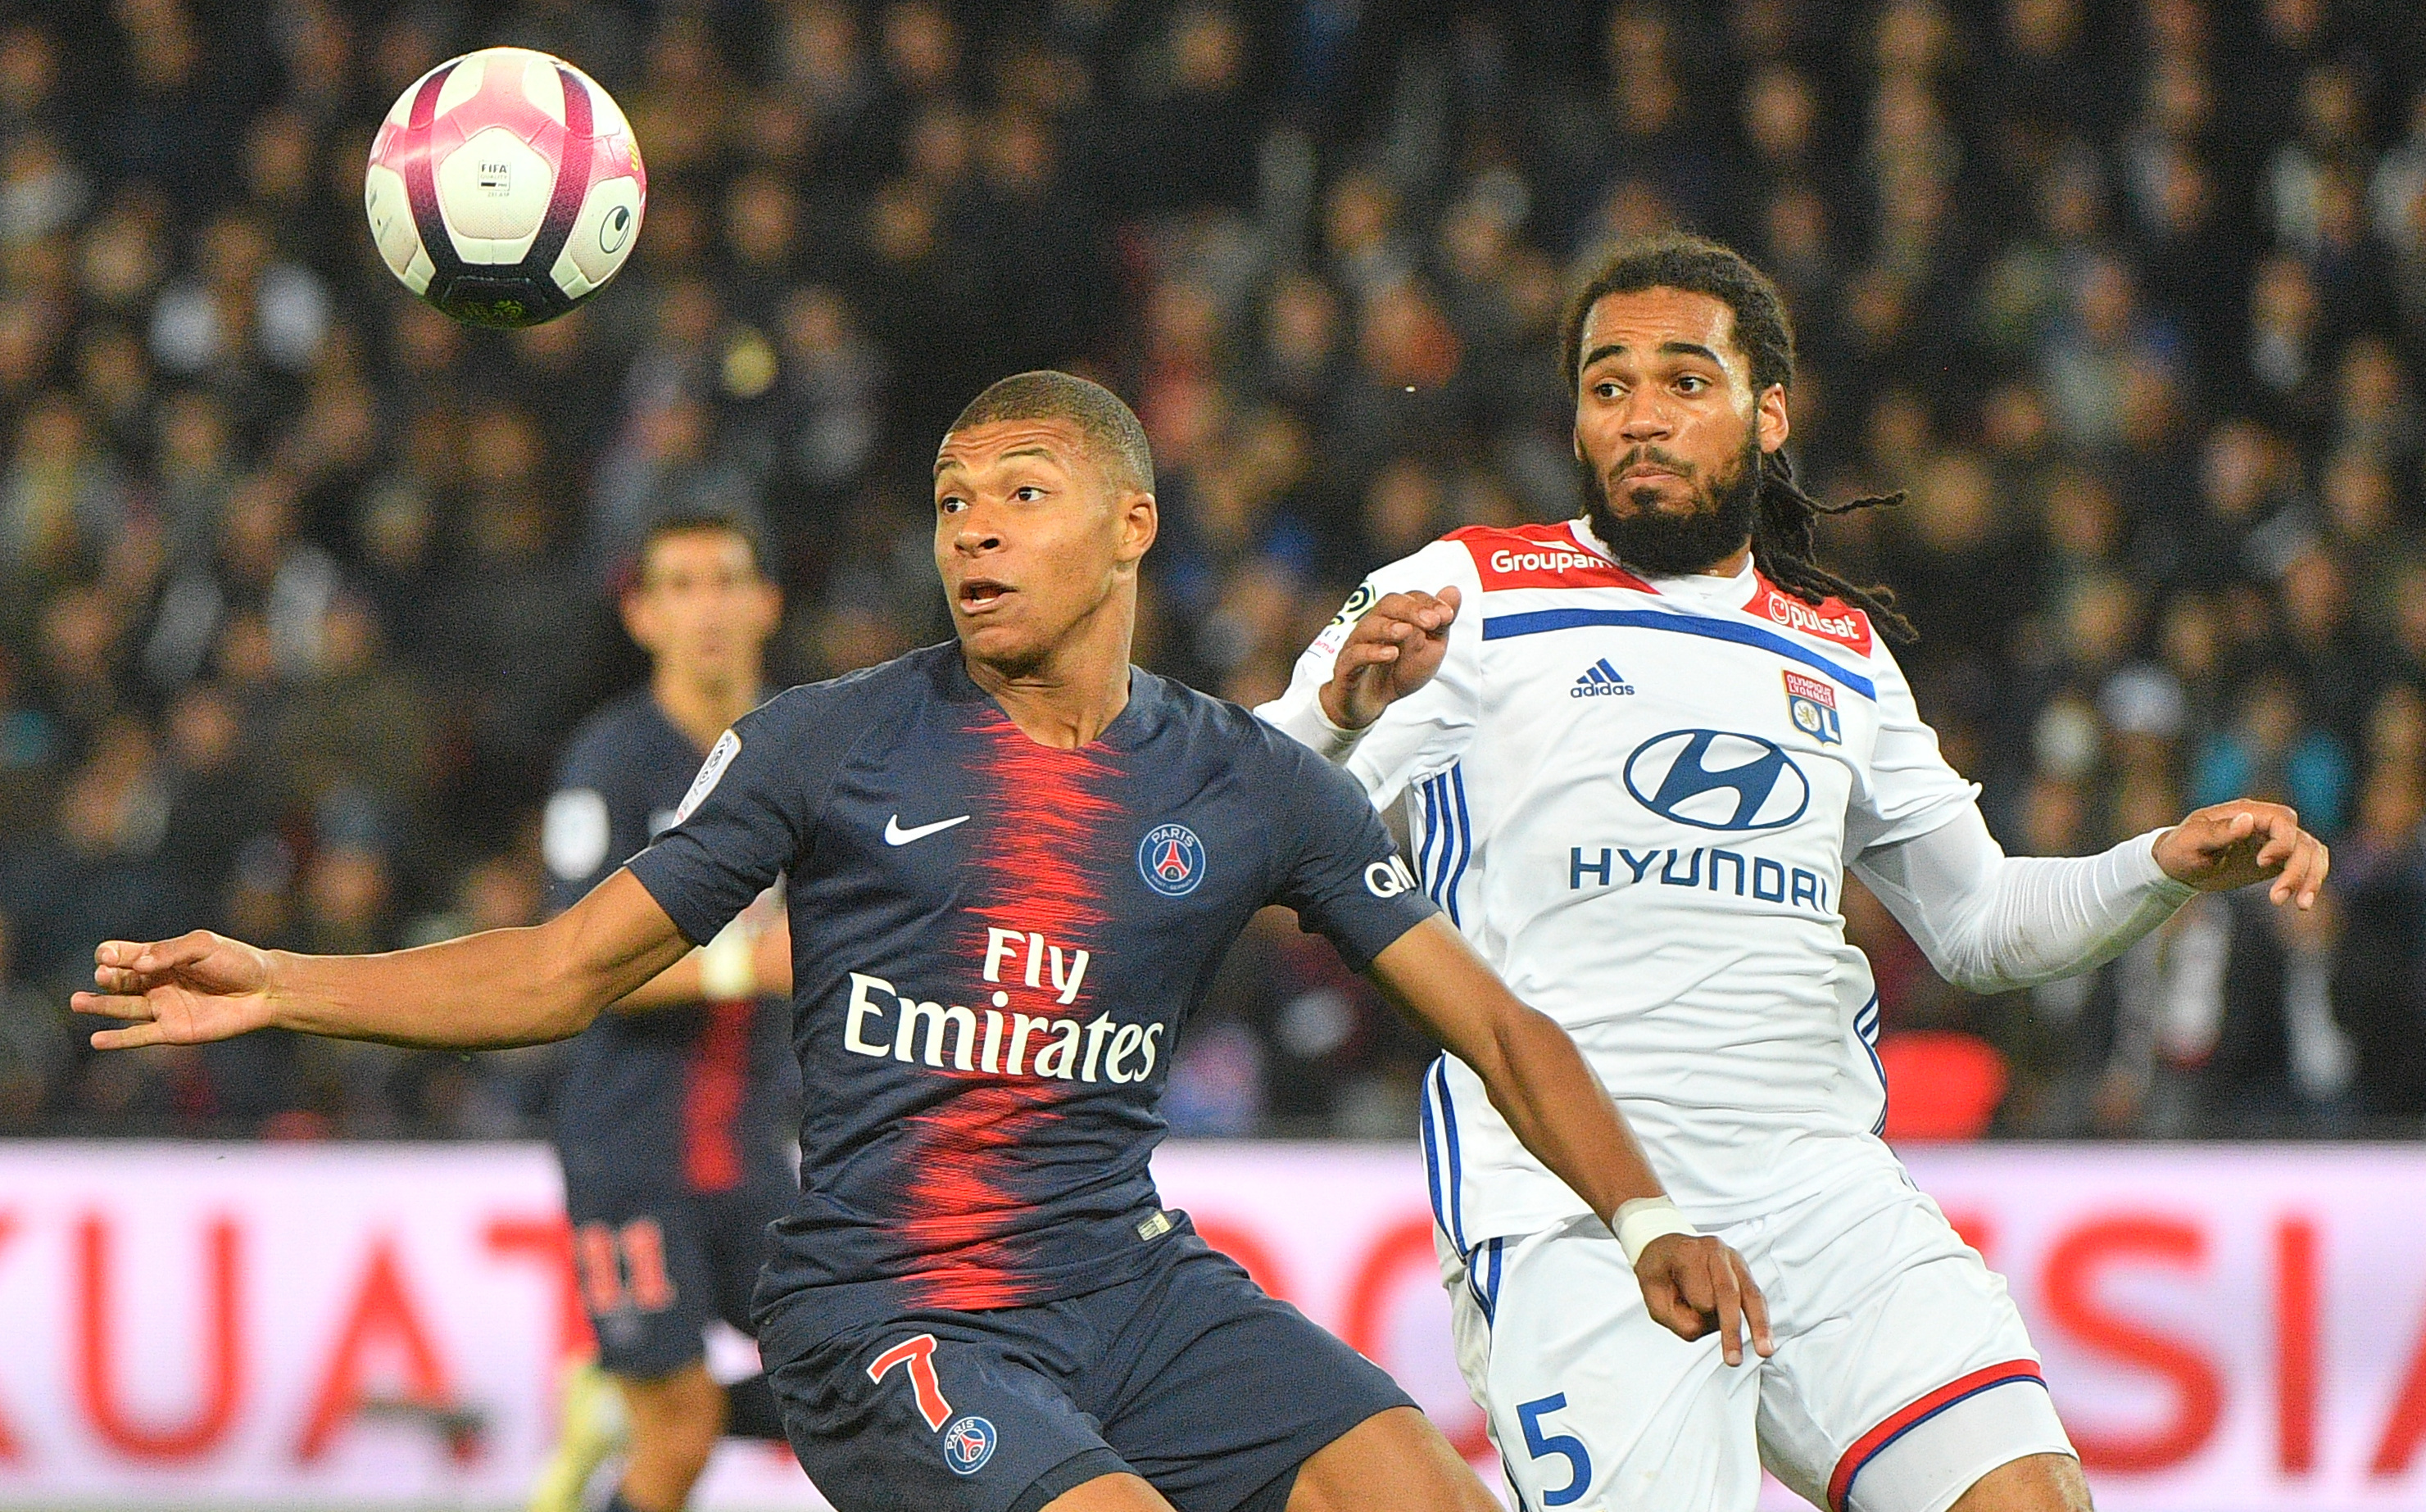 'Match-fixing' probe into PSG's 6-1 win over Red Star